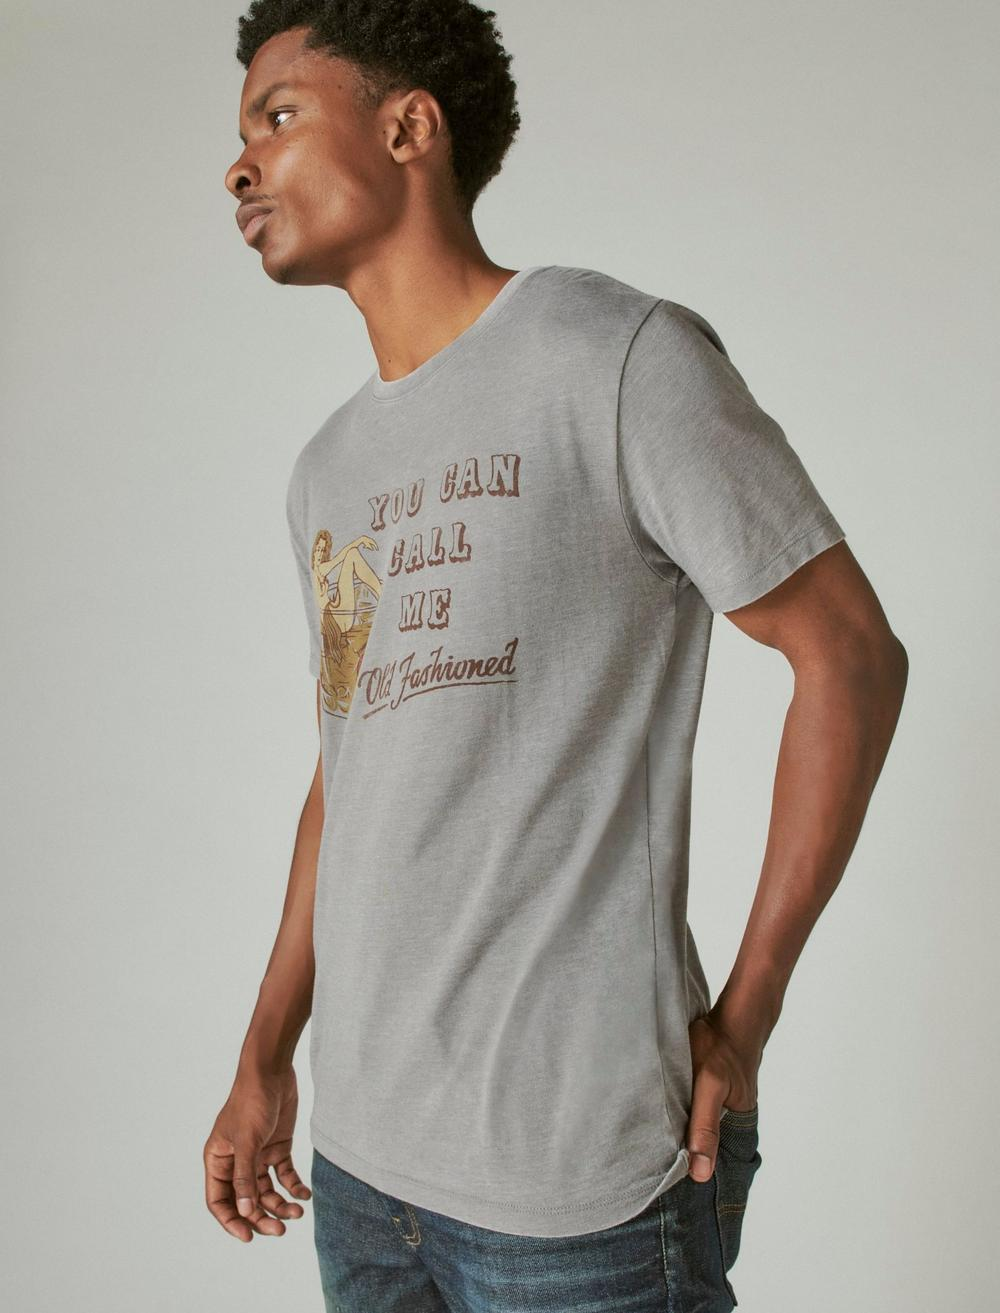 OLD FASHIONED GRAPHIC TEE, image 3